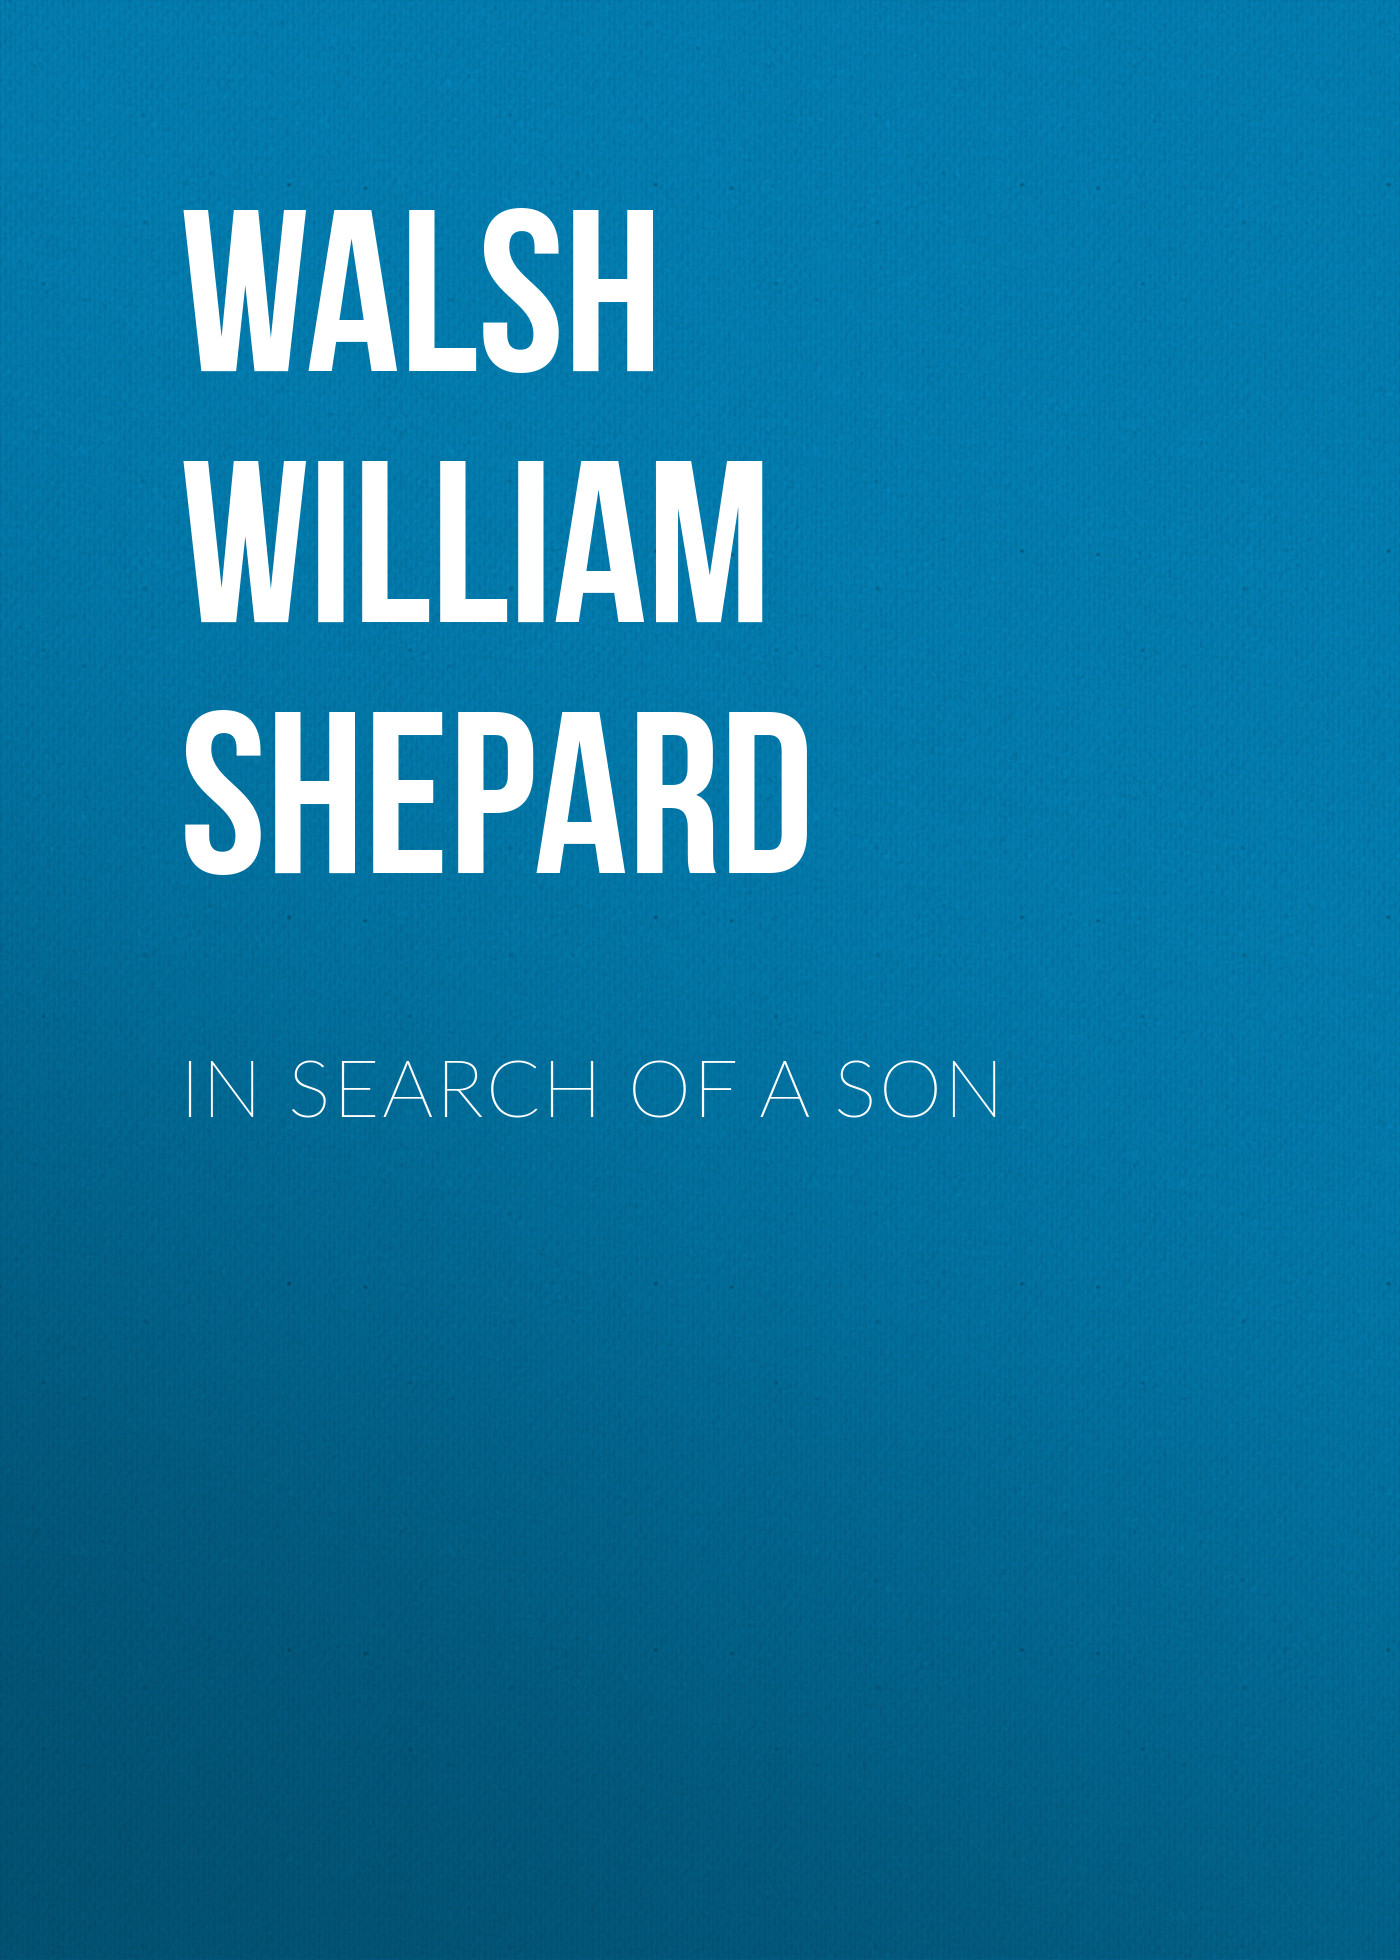 Walsh William Shepard In Search of a Son axcent x56504 636